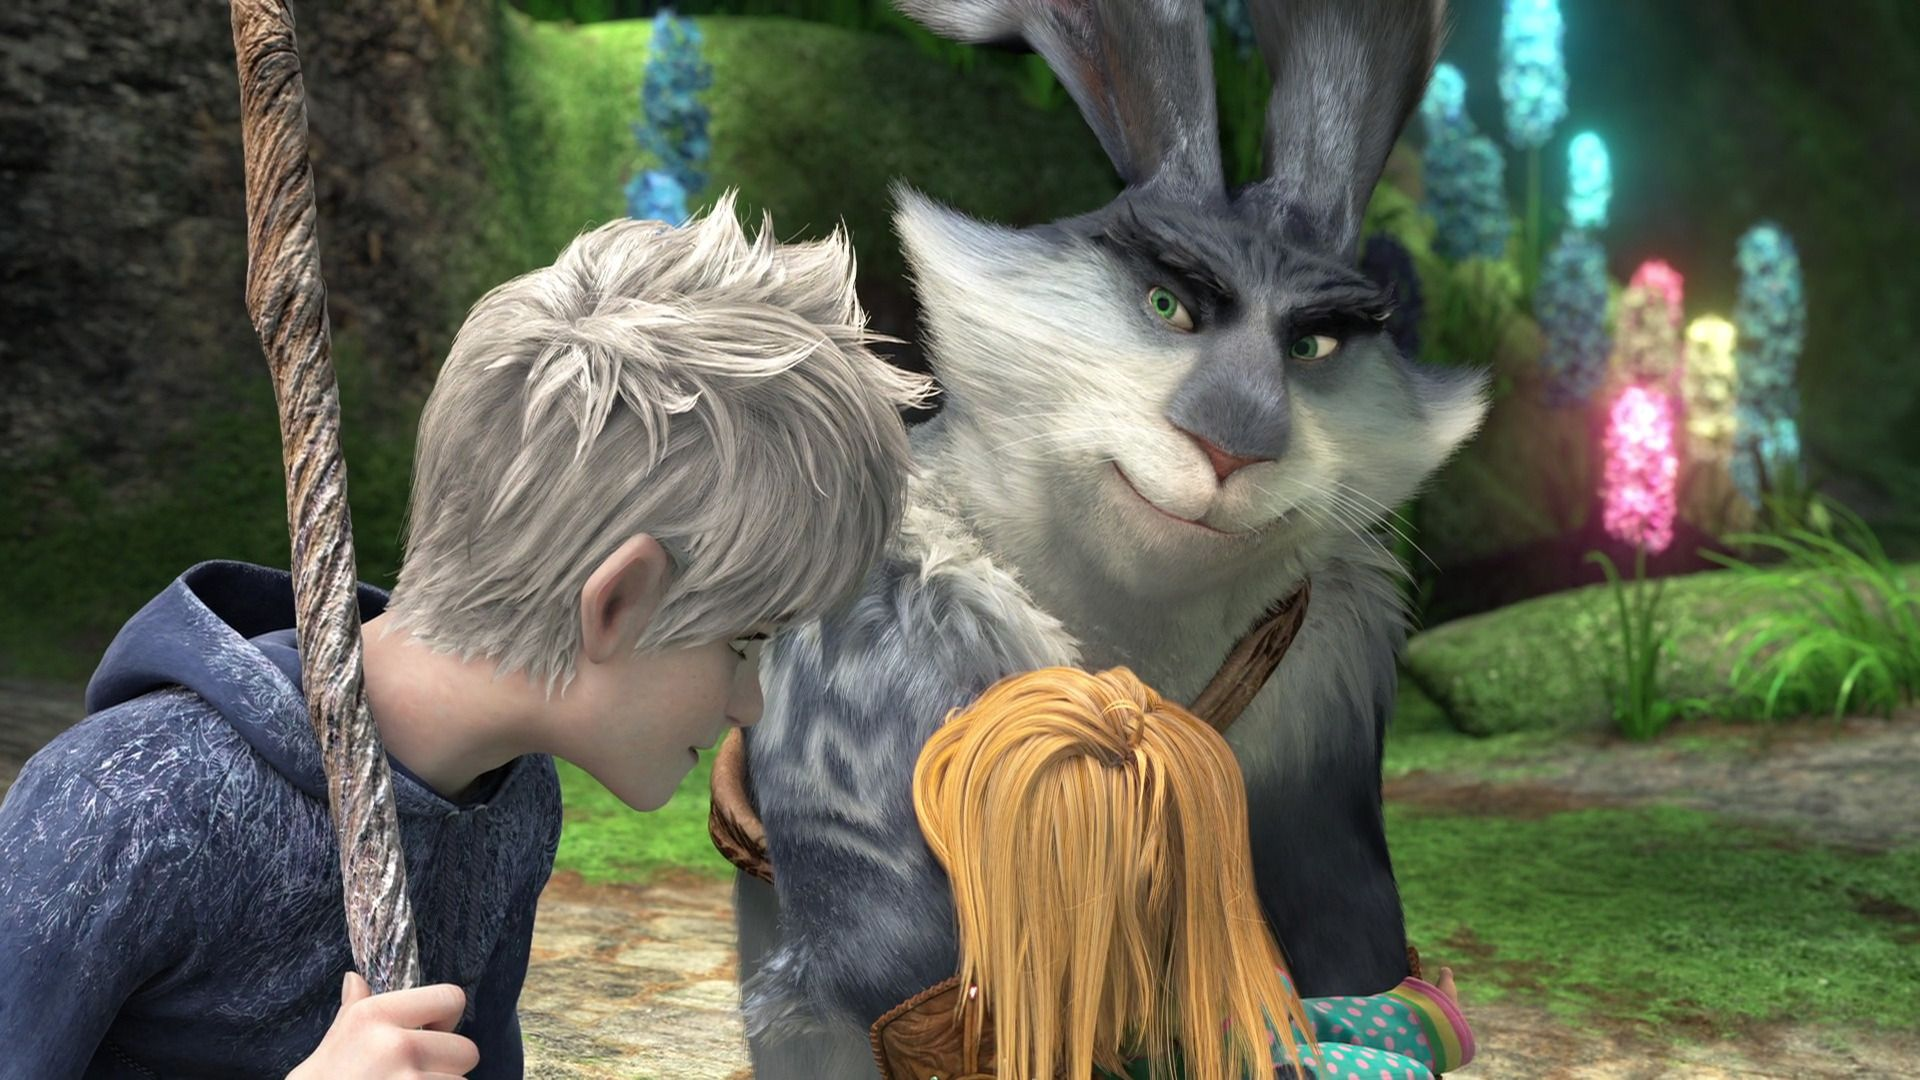 easter bunny rise of the guardians | Random Rise of the Guardians ... for easter bunny rise of the guardians gif  143gtk